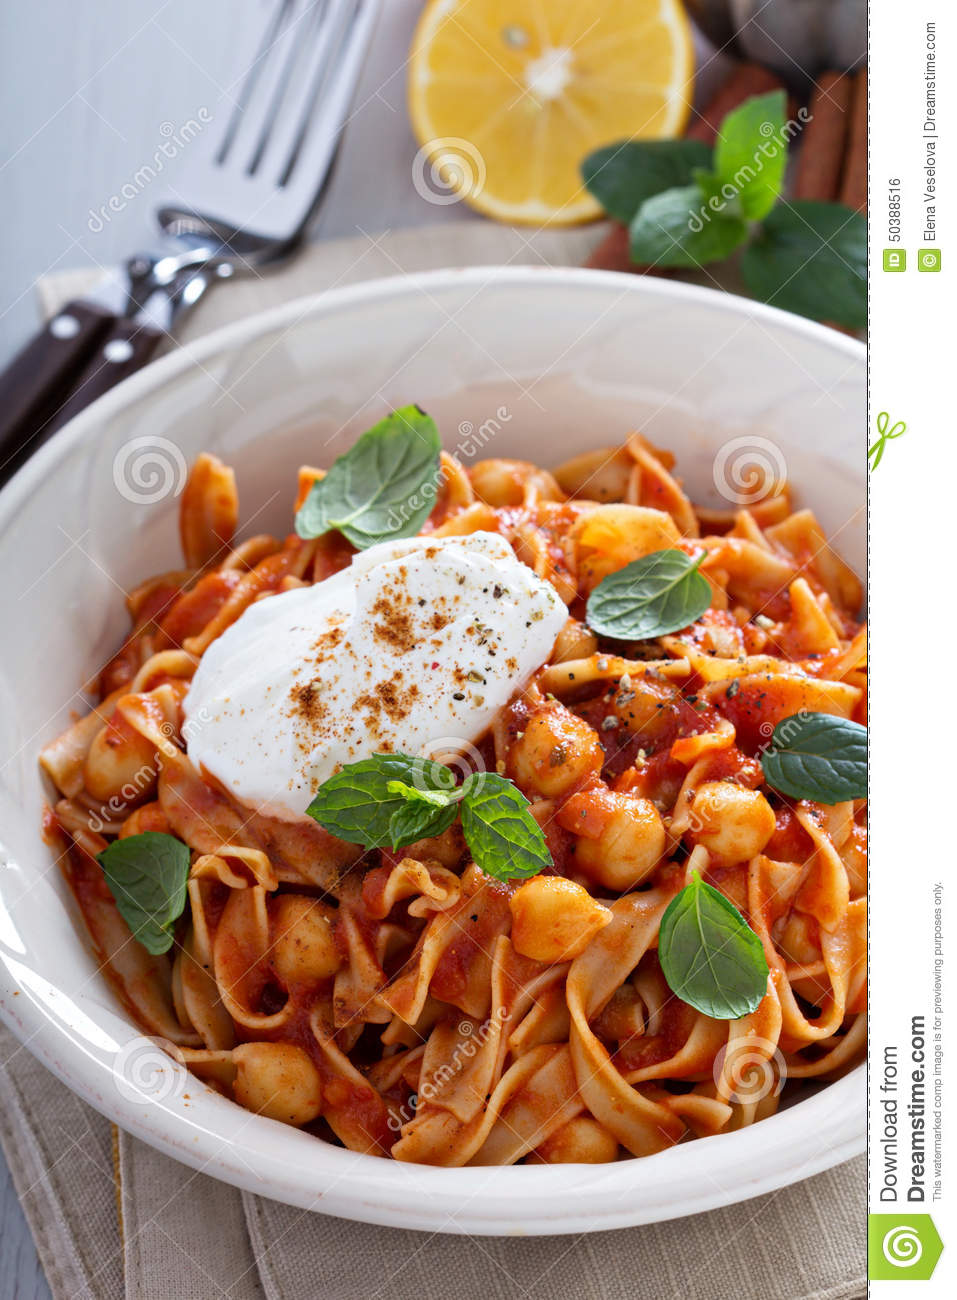 Pasta With Tomato Sauce And Chickpeas Stock Photo - Image: 50388516